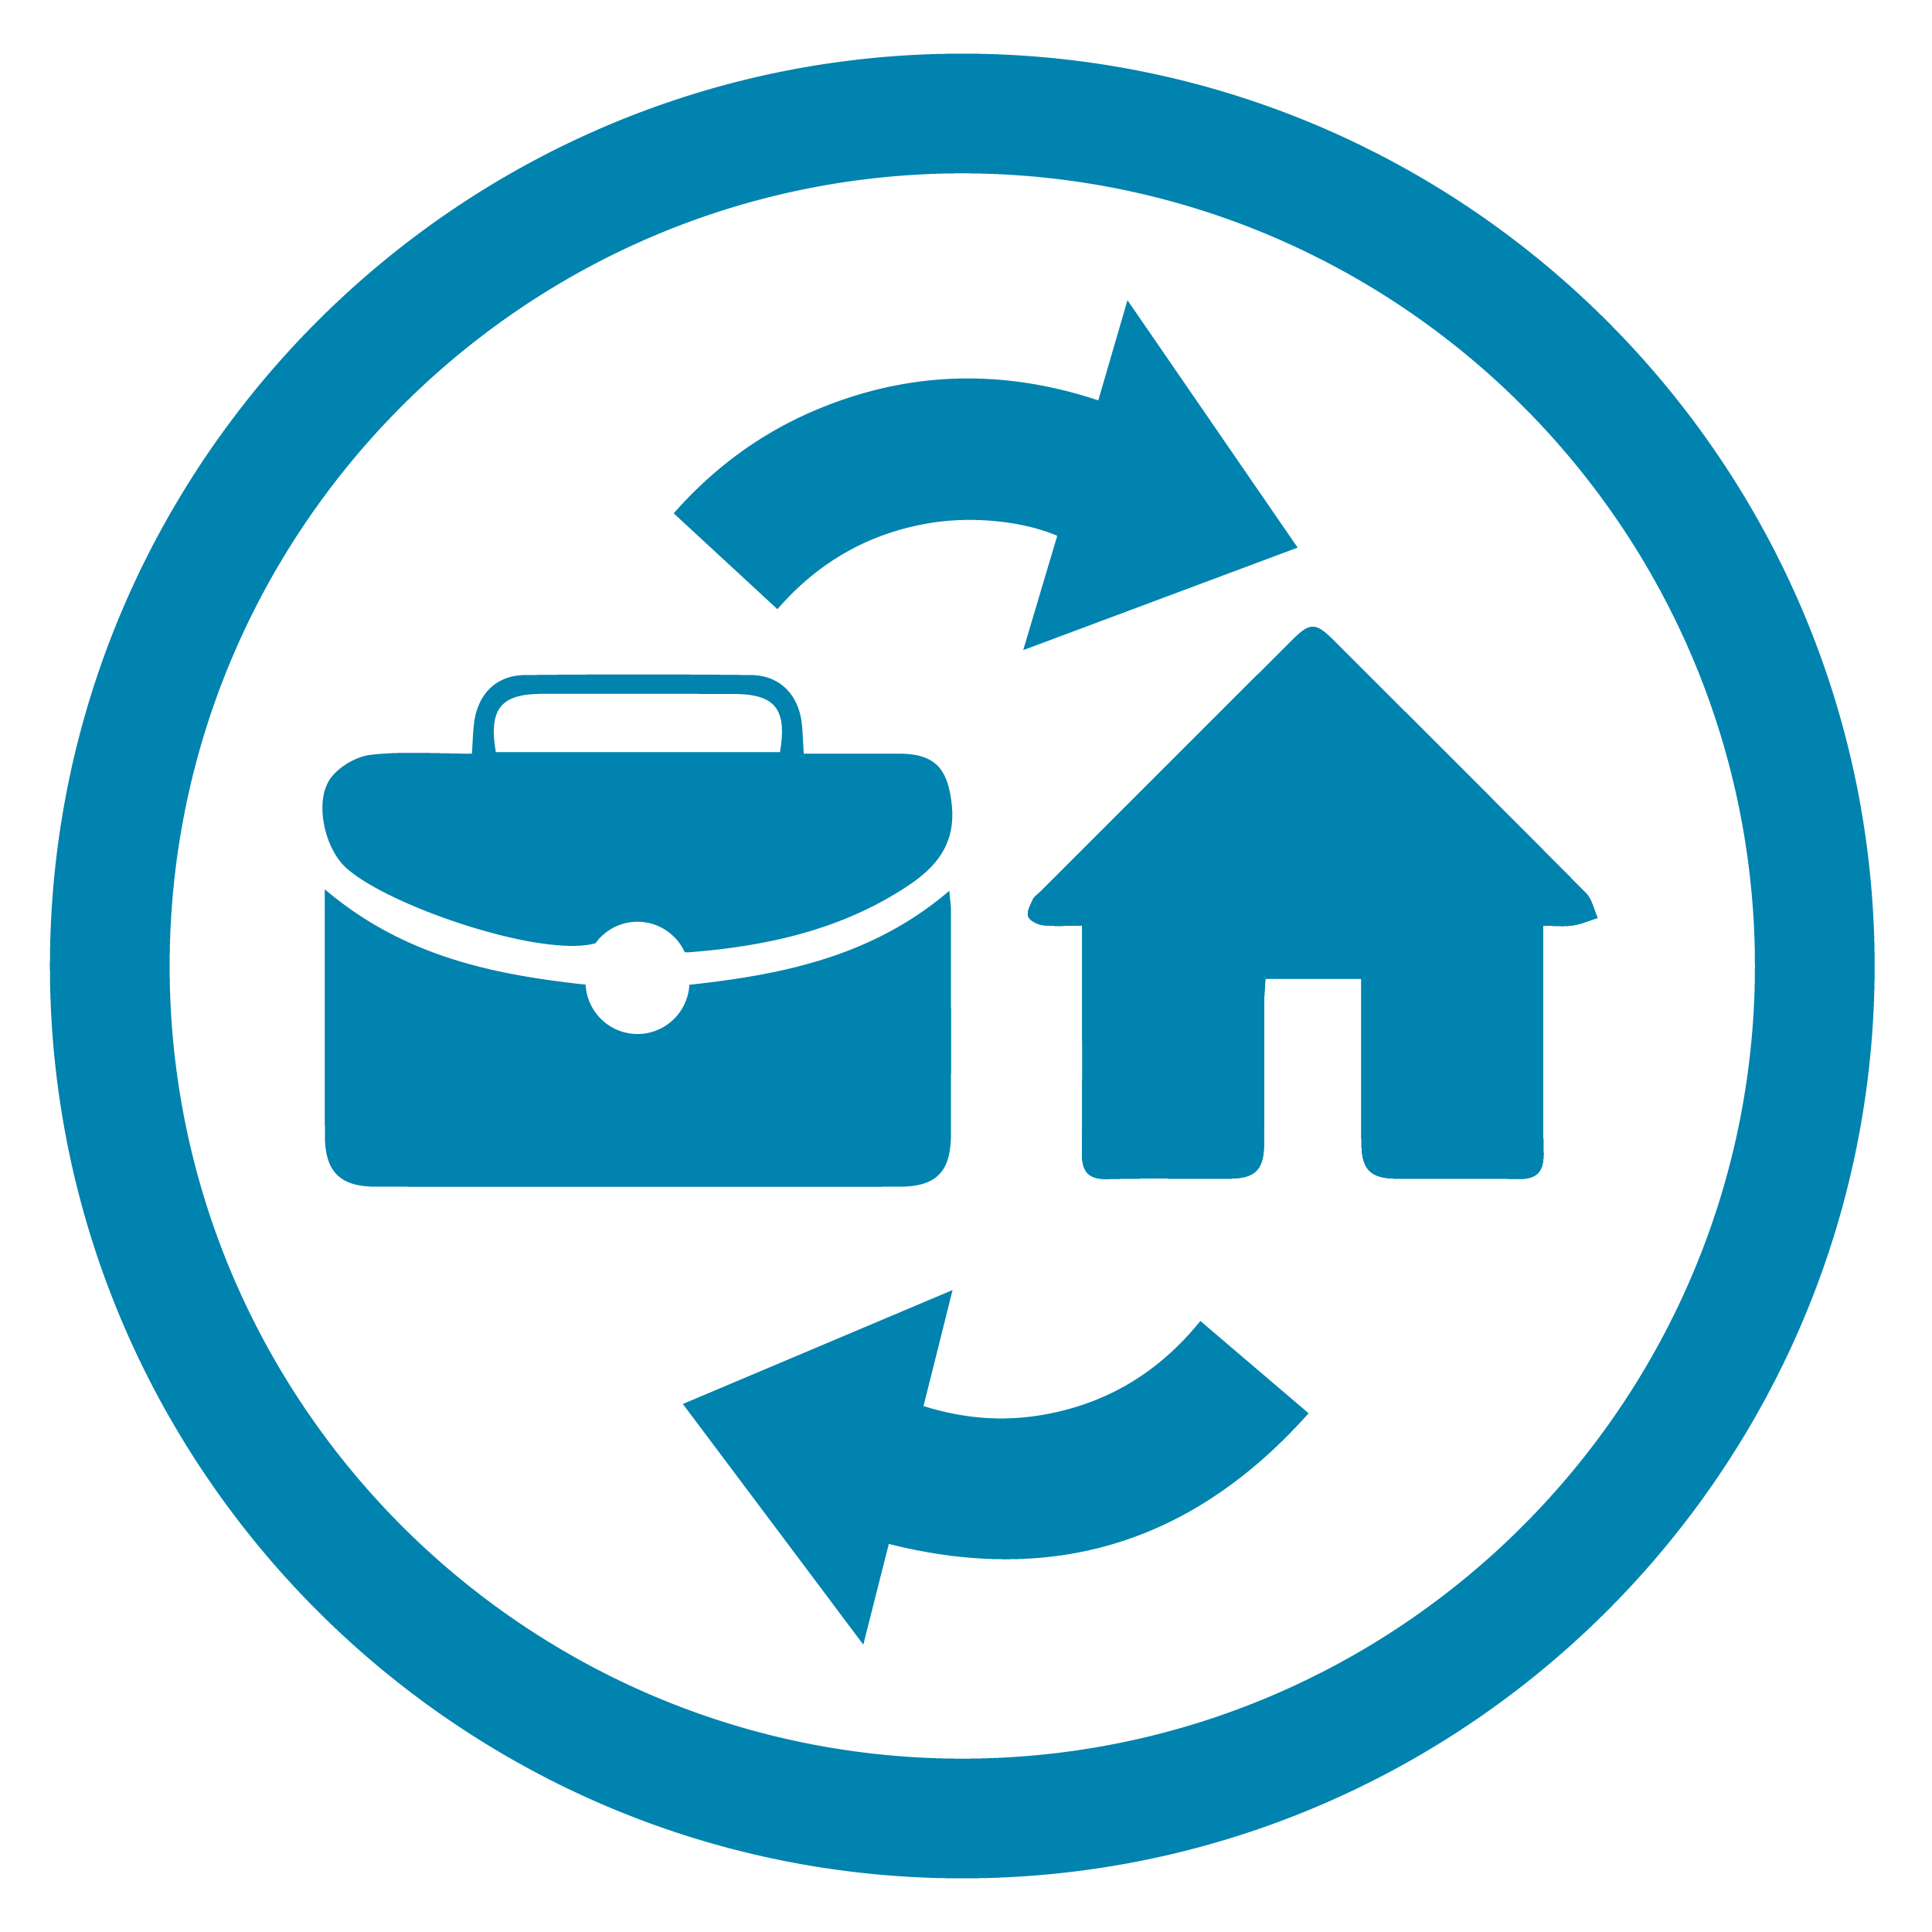 A blue circle with a house and briefcase inside it.